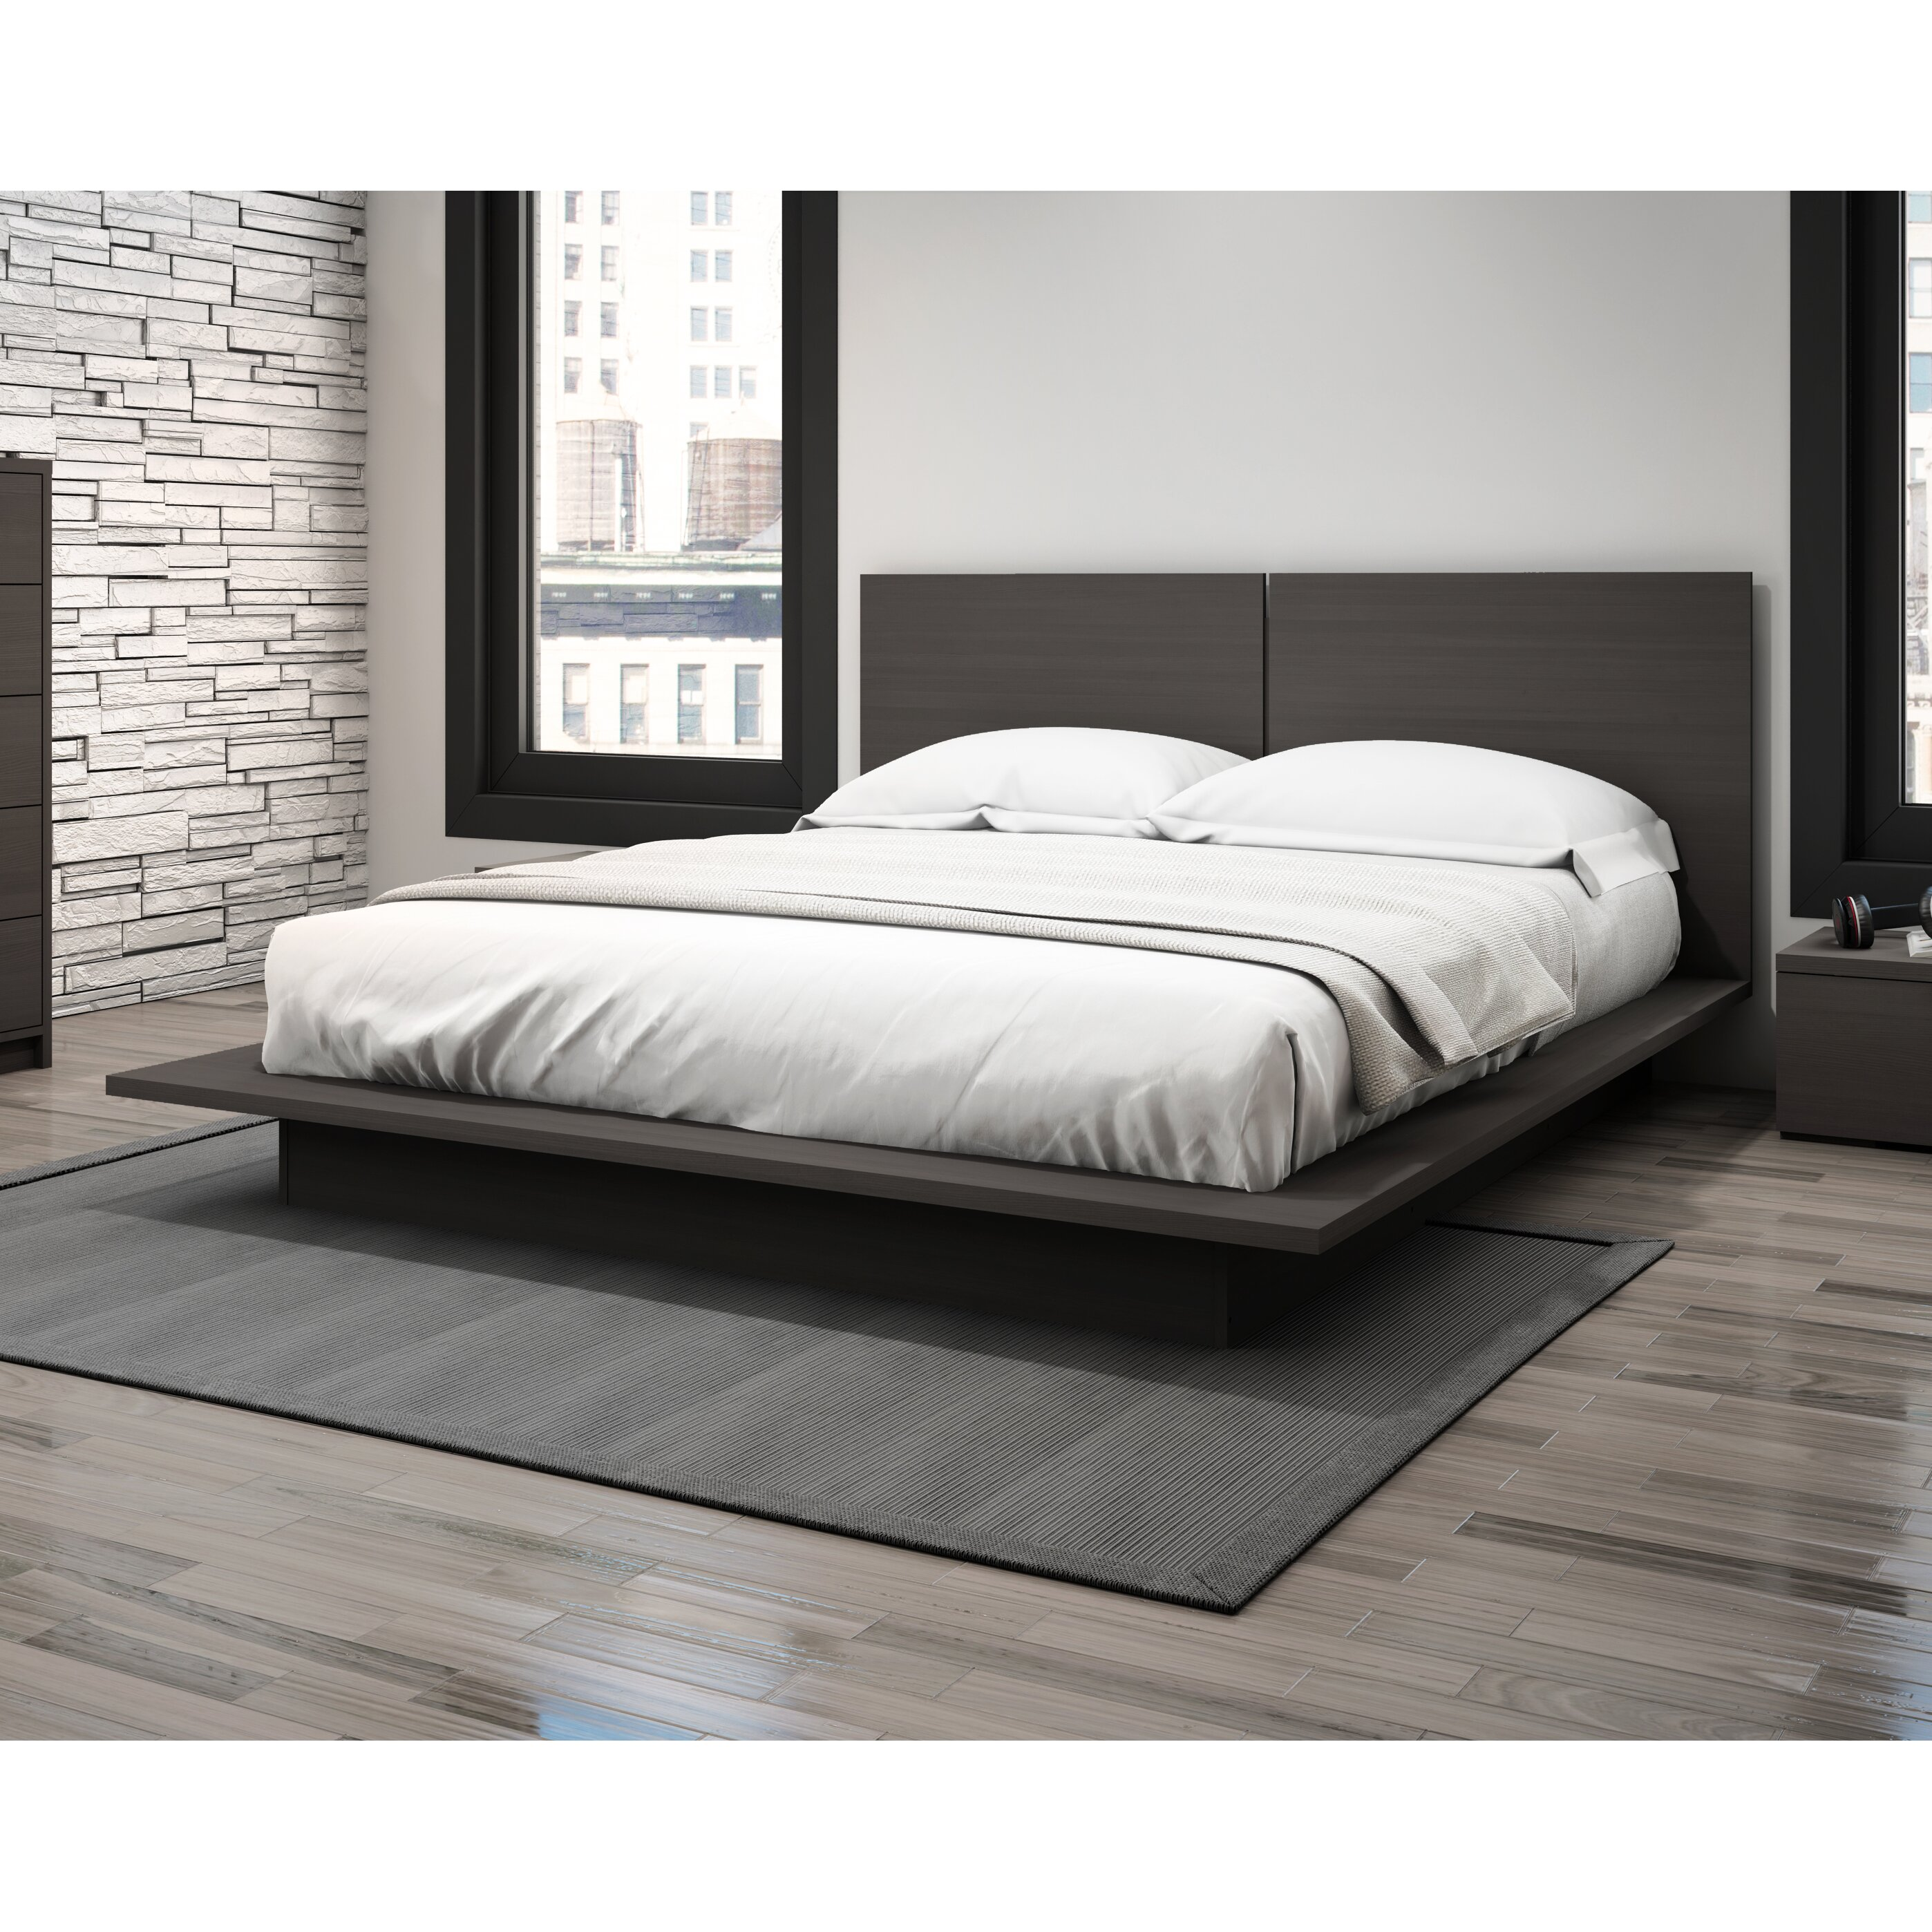 Stellar Home Queen Platform Bed Reviews Wayfair